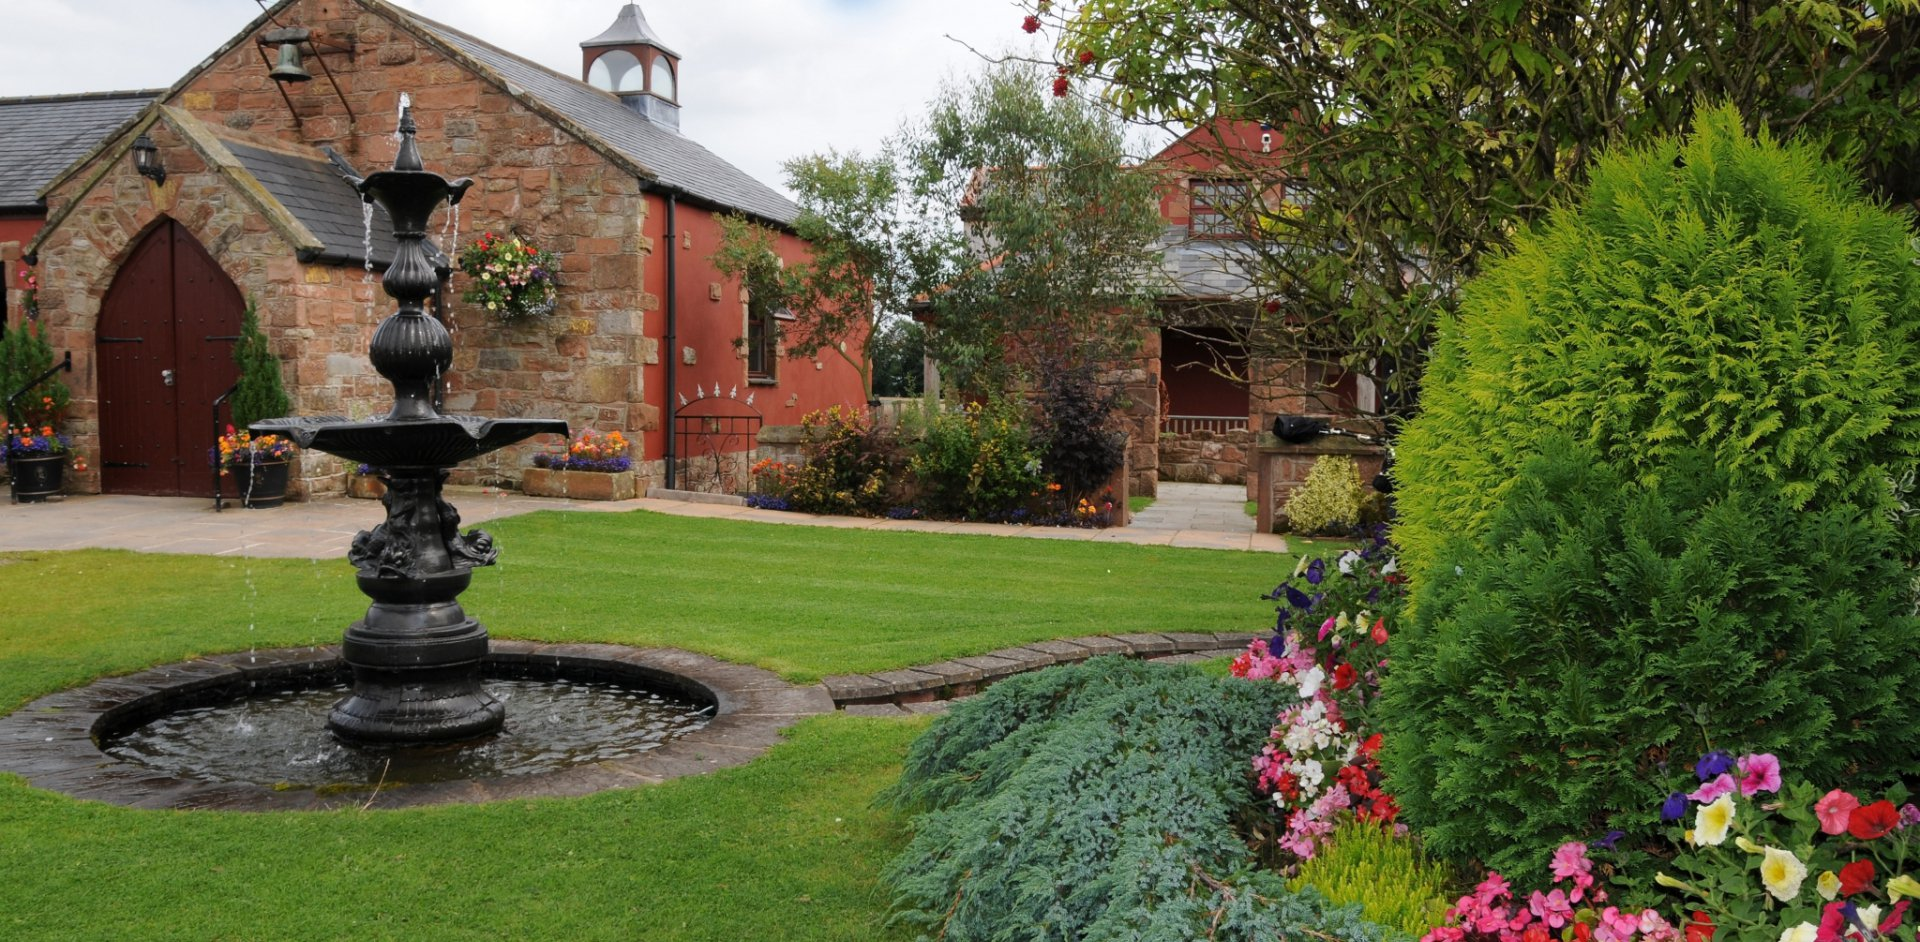 Places to Have a Wedding - The Mill Forge Hotel and Wedding Venue near Gretna Green